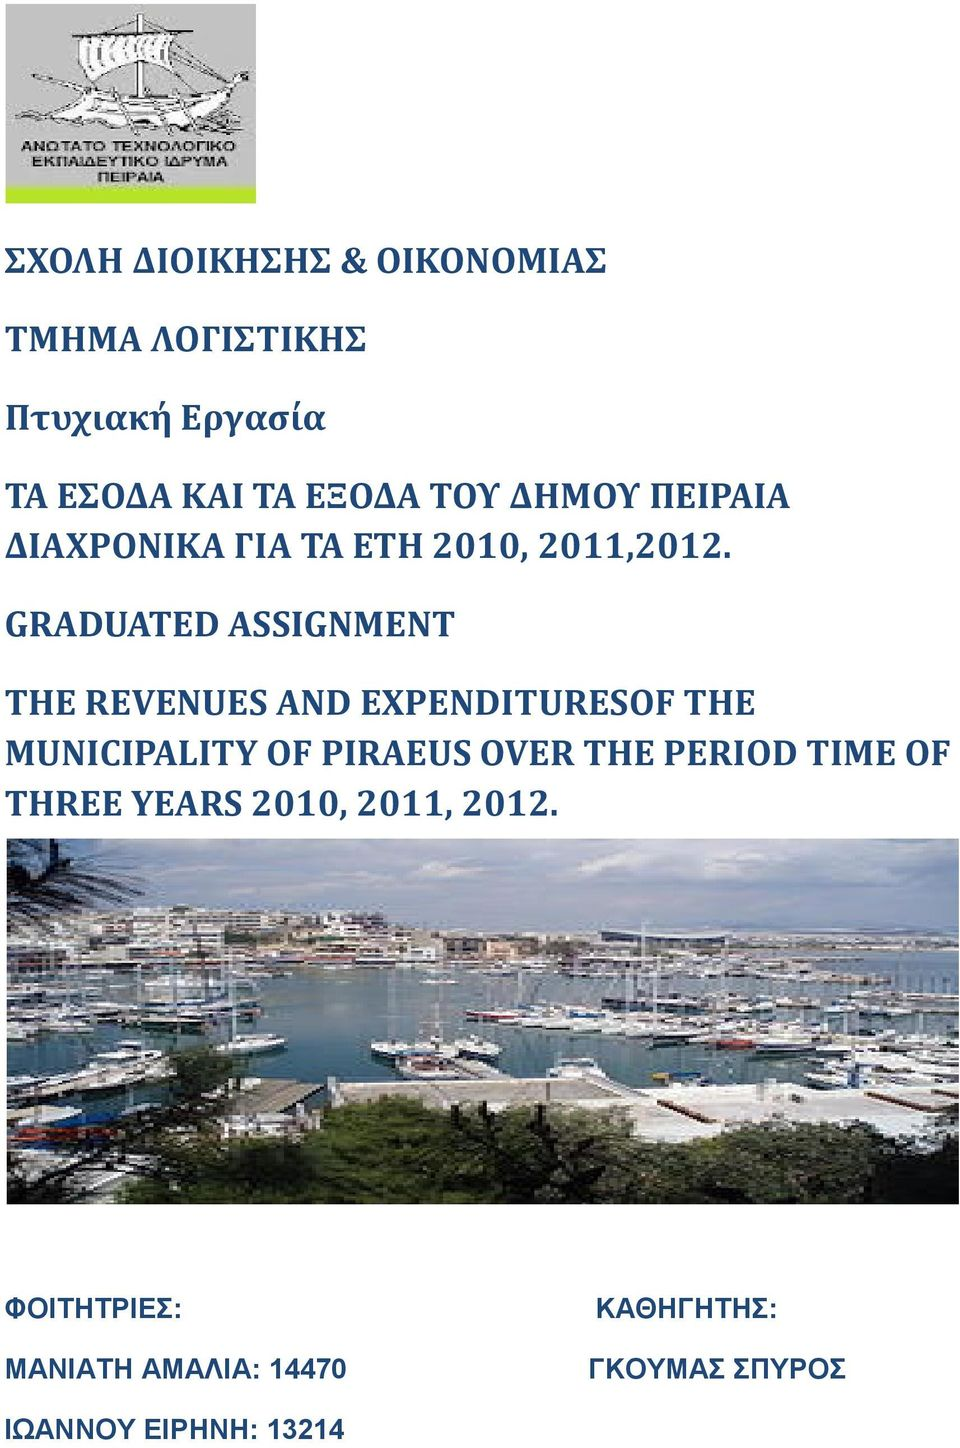 GRADUATED ASSIGNMENT THE REVENUES AND EXPENDITURESOF THE MUNICIPALITY OF PIRAEUS OVER THE